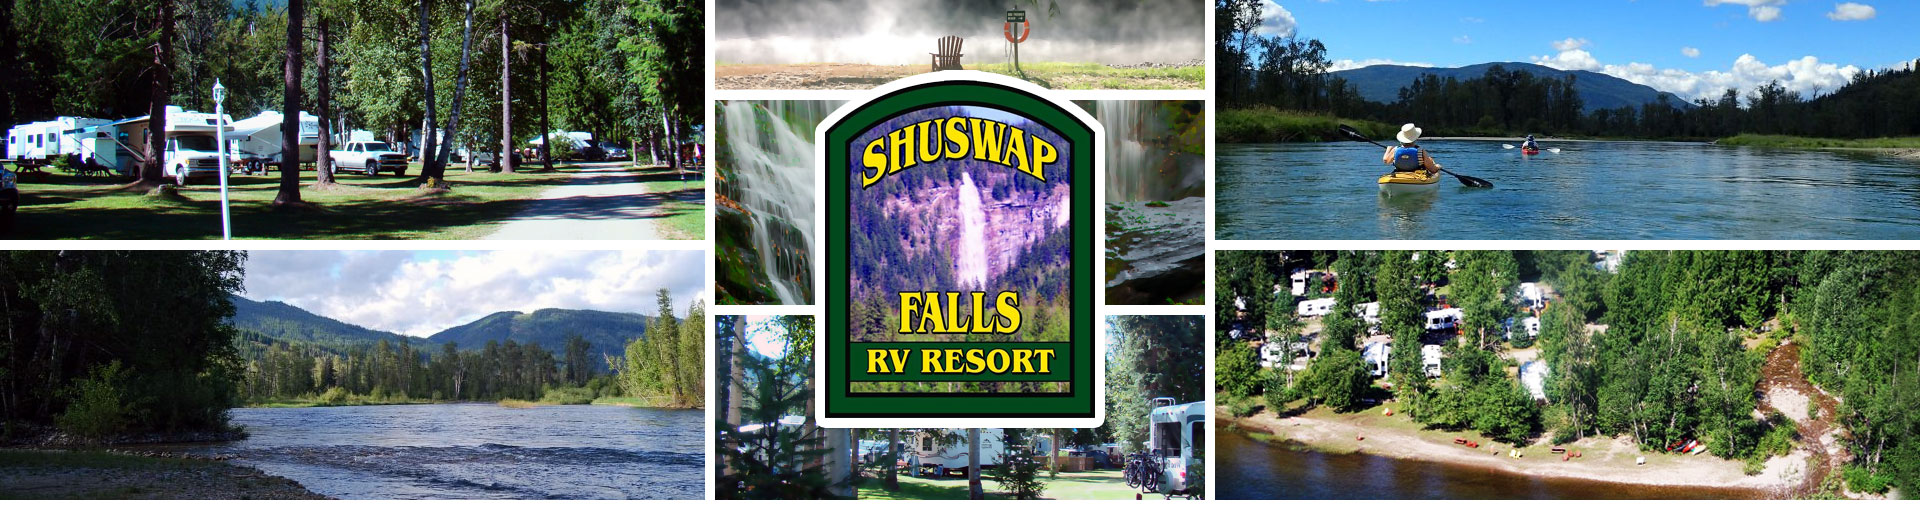 Shuswap Falls R.V. Resort Collage